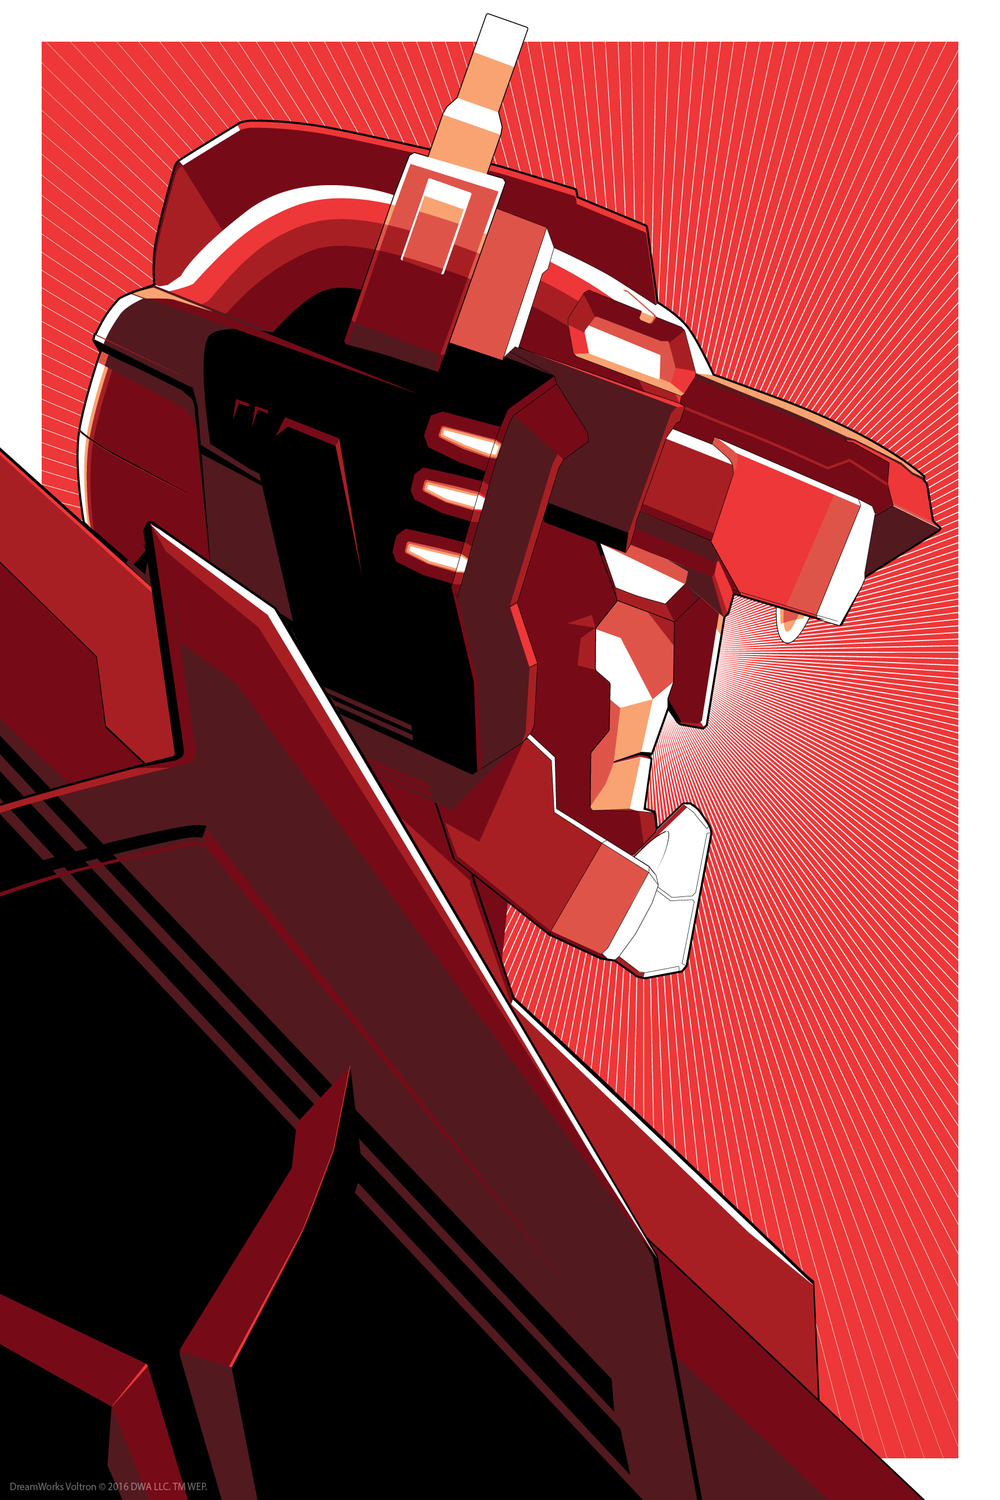 awesome-collection-of-voltron-art-from-the-hero-complex-gallery5